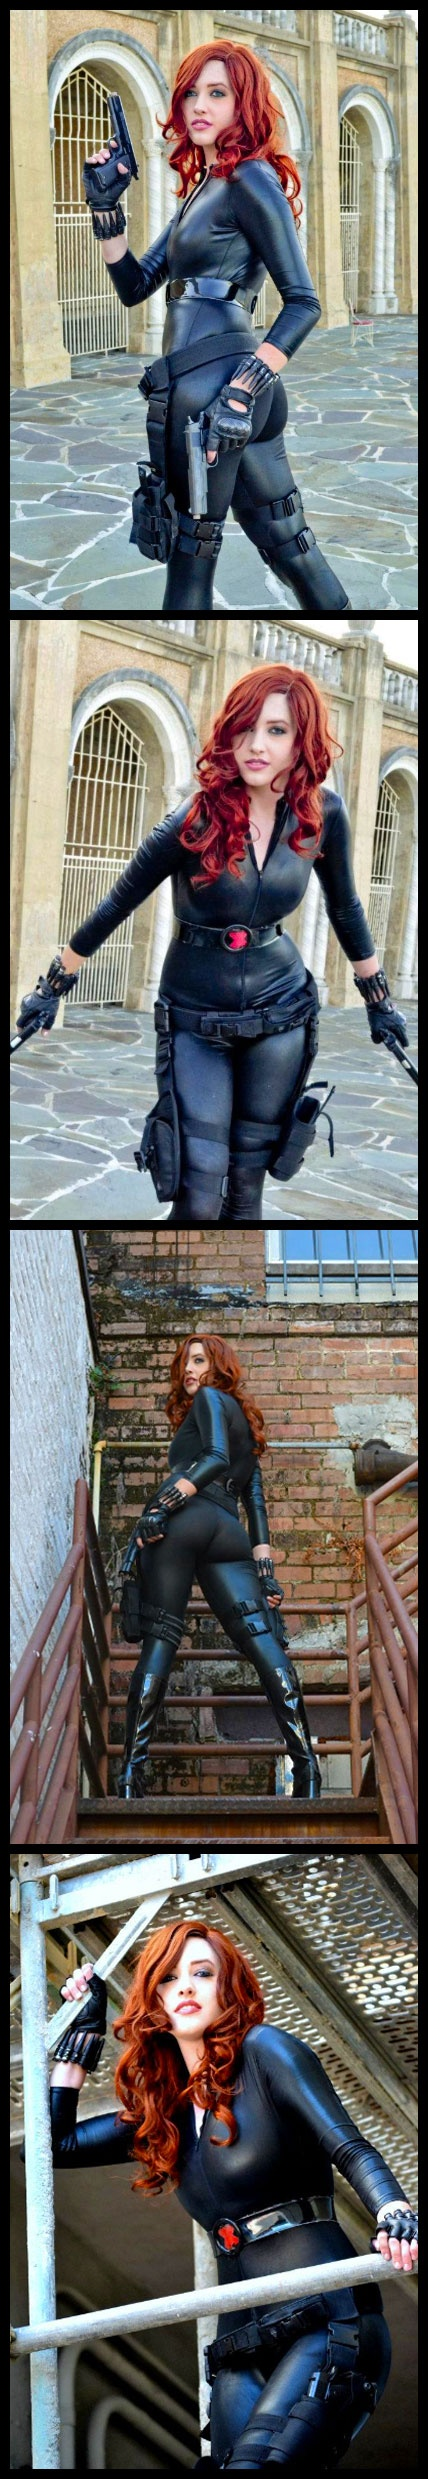 best geeky stuff images on pinterest funny stuff comic con